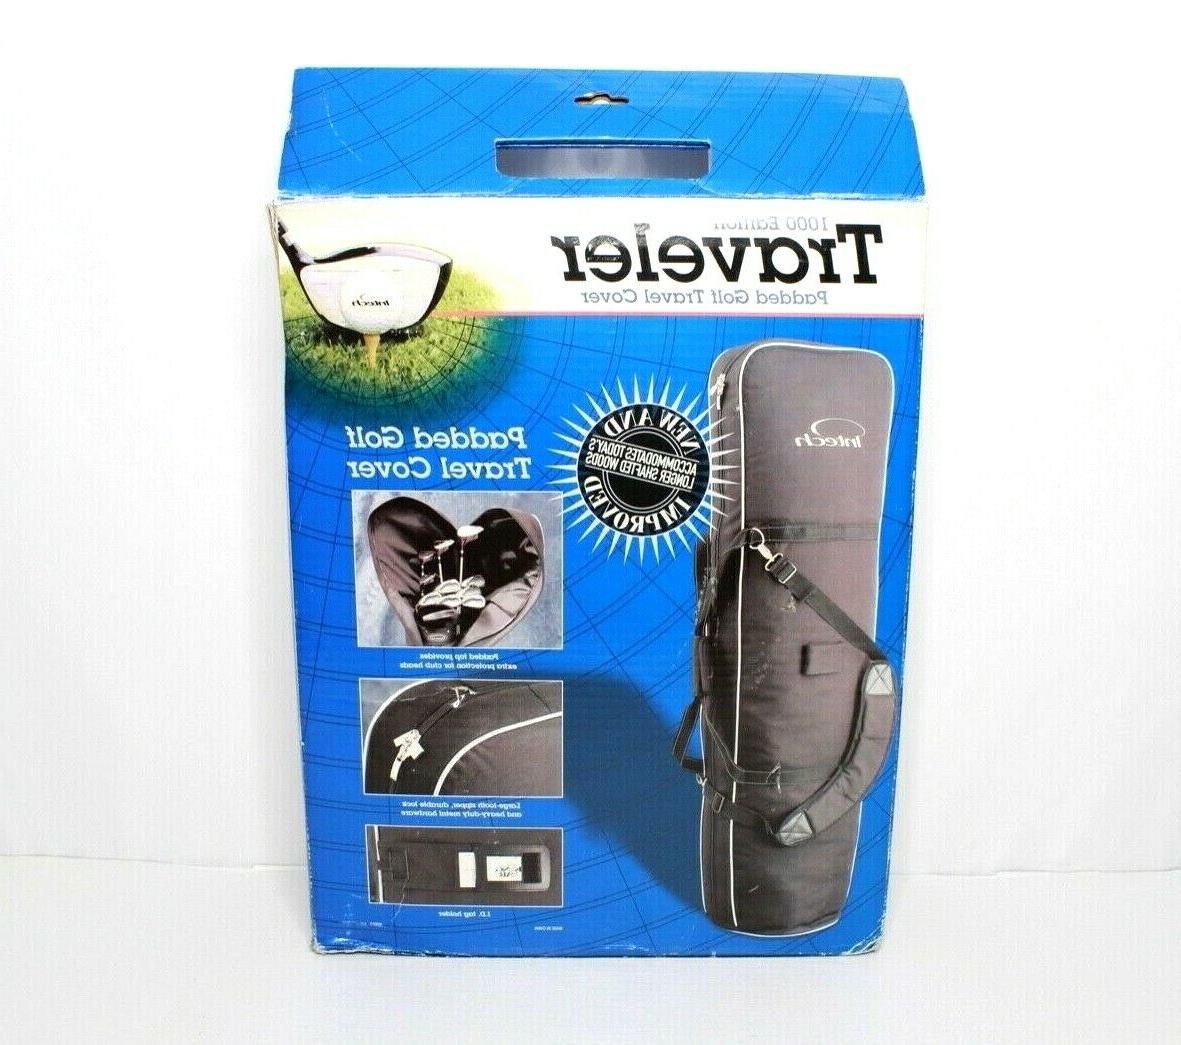 New 1000 Edition Golf Travel Cover Padded Strap